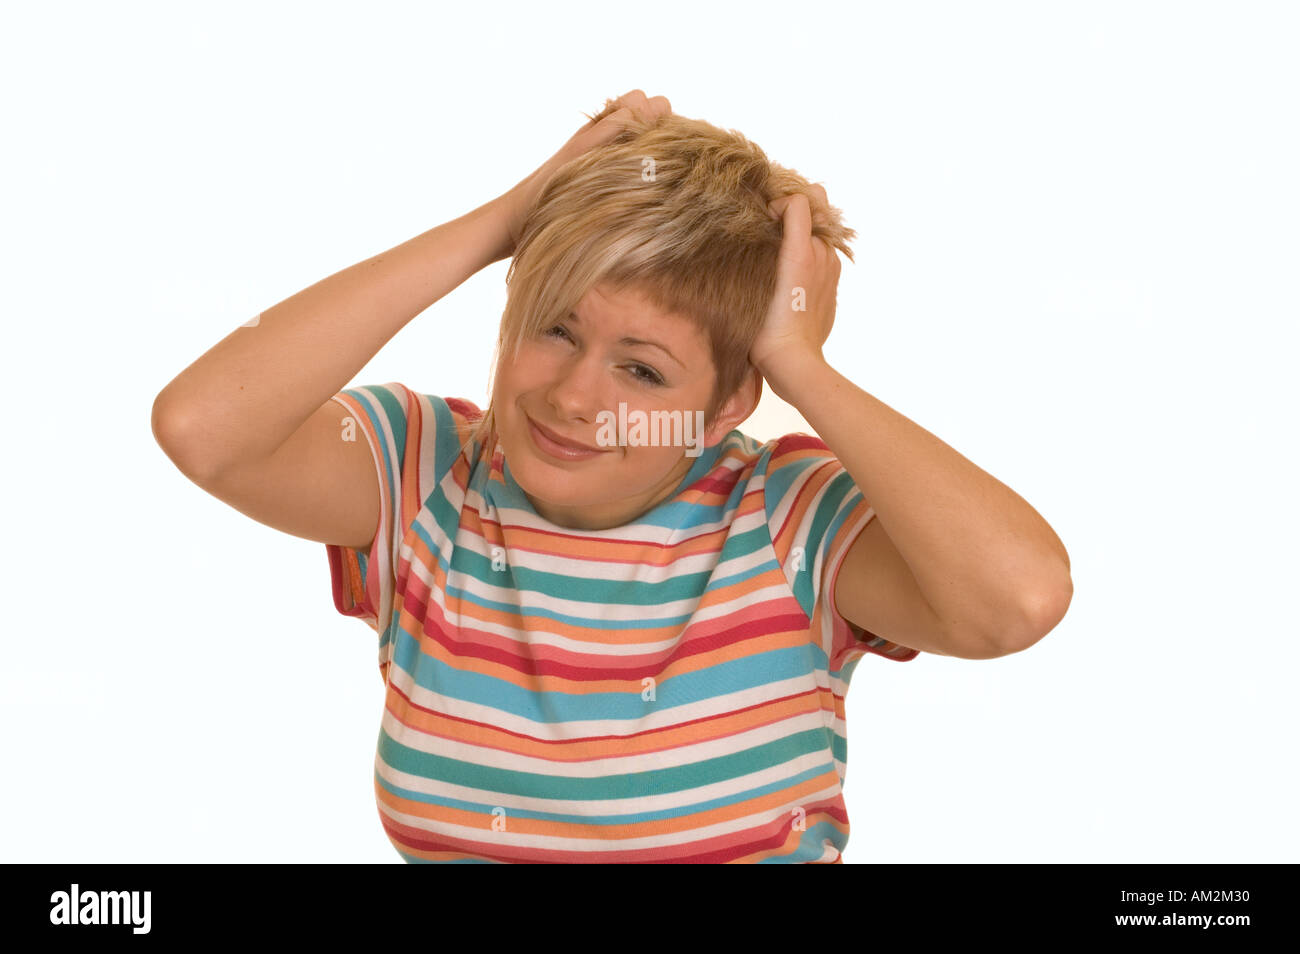 Girl tearing hair out in frustration - Stock Image